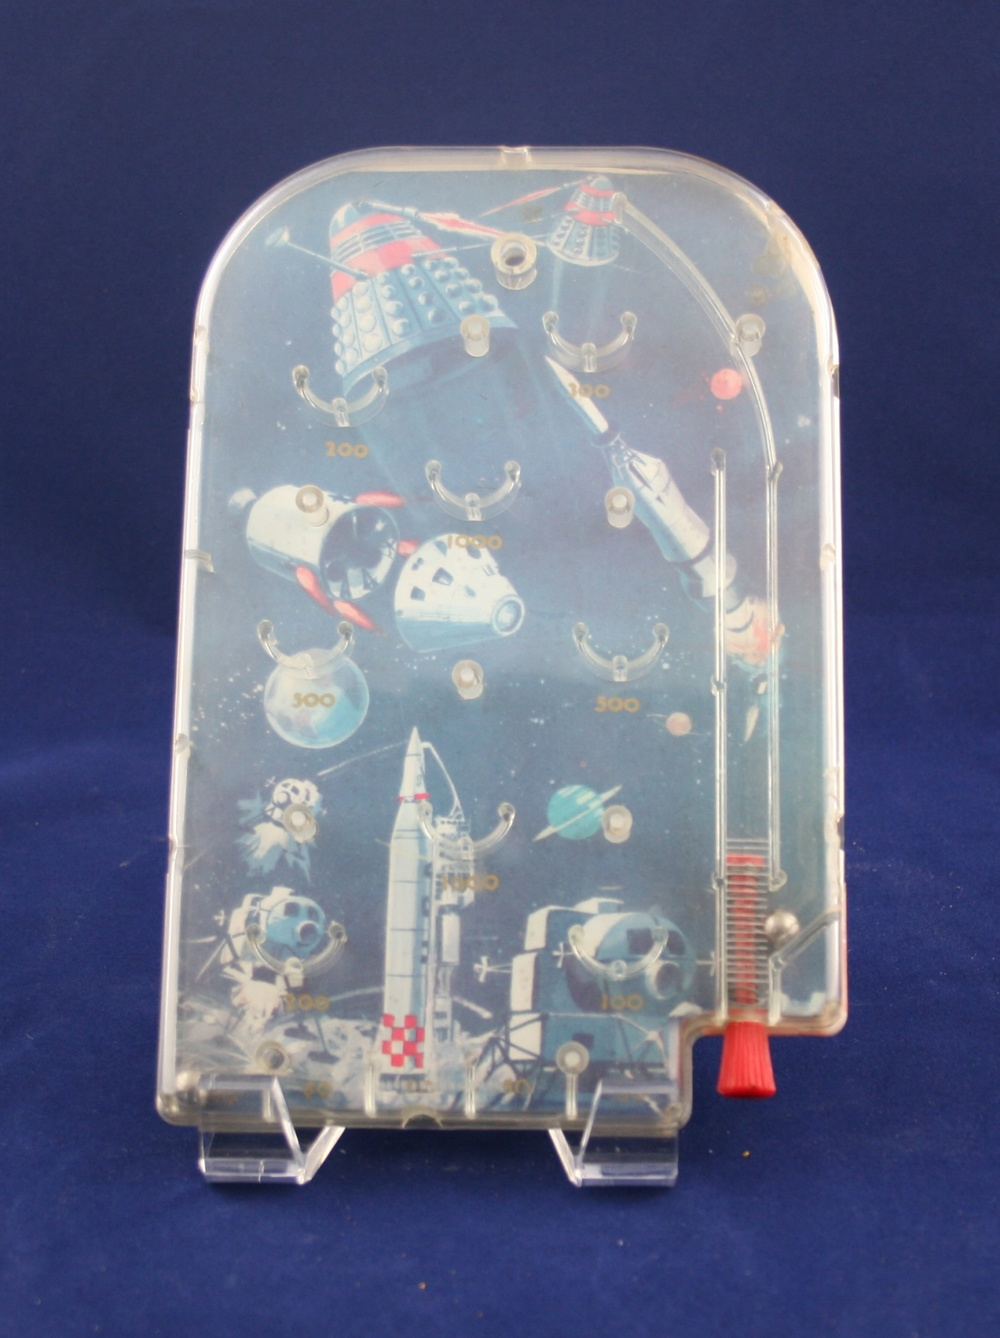 Grace Toys Ltd., small horizontal Dalek Bagatelle (probably not licensed by the BBC)